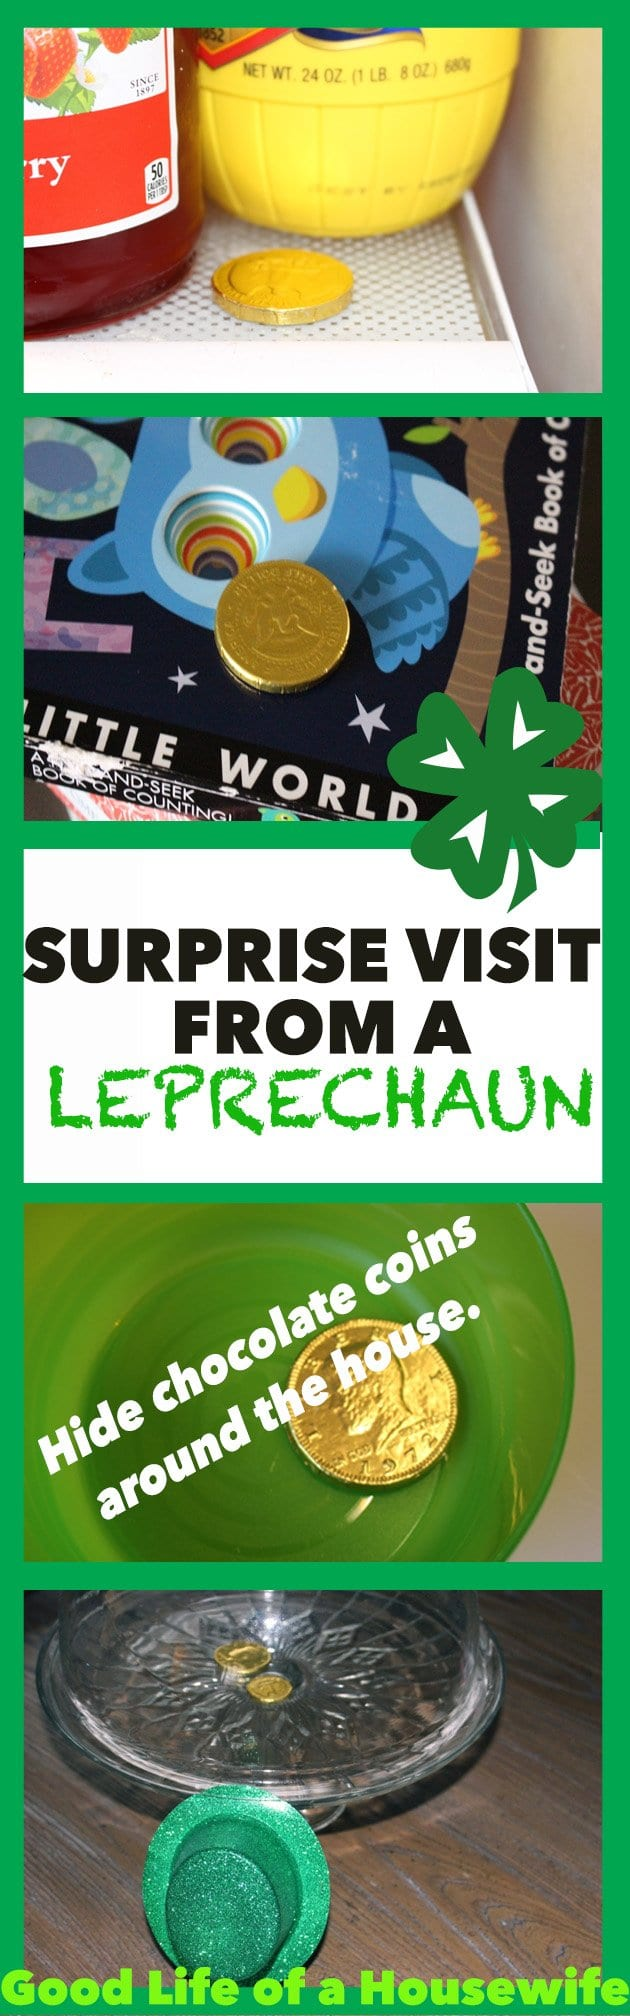 A Surprise Visit from A Leprechaun | Leave gold chocolate coins around the house for your kids to find. St. Patrick's Day Fun. Good Life of a Housewife www.goodlifeofahousewife.com